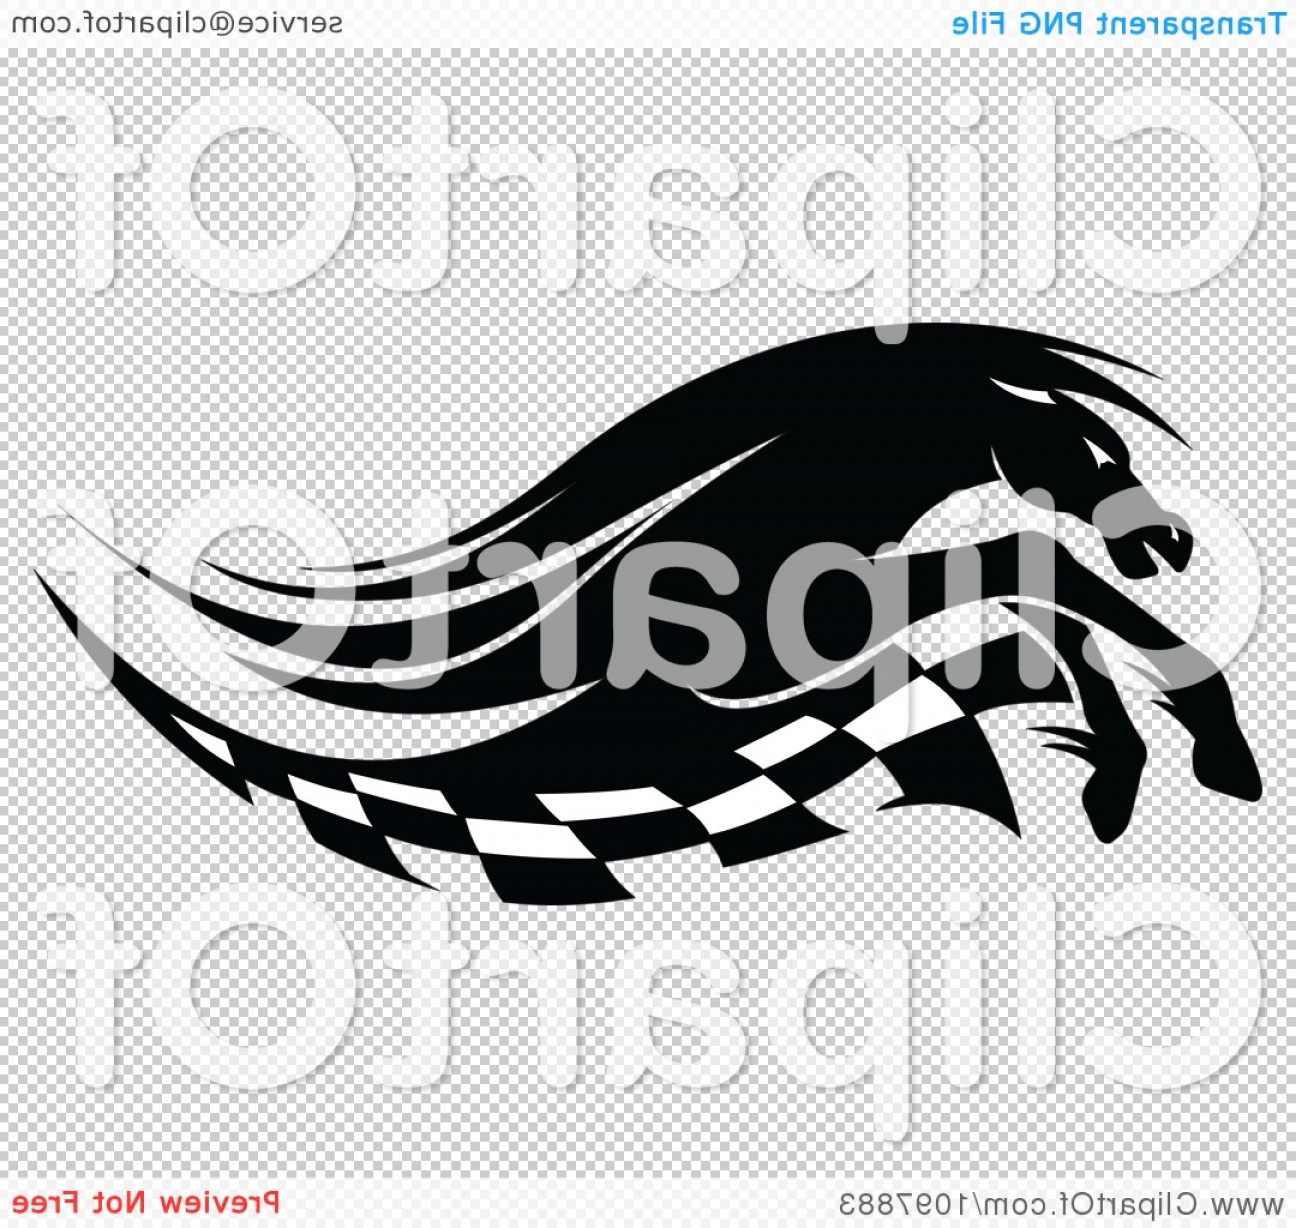 Checkered Flag Background Vector: Black And White Running Race Horse And Checkered Flag